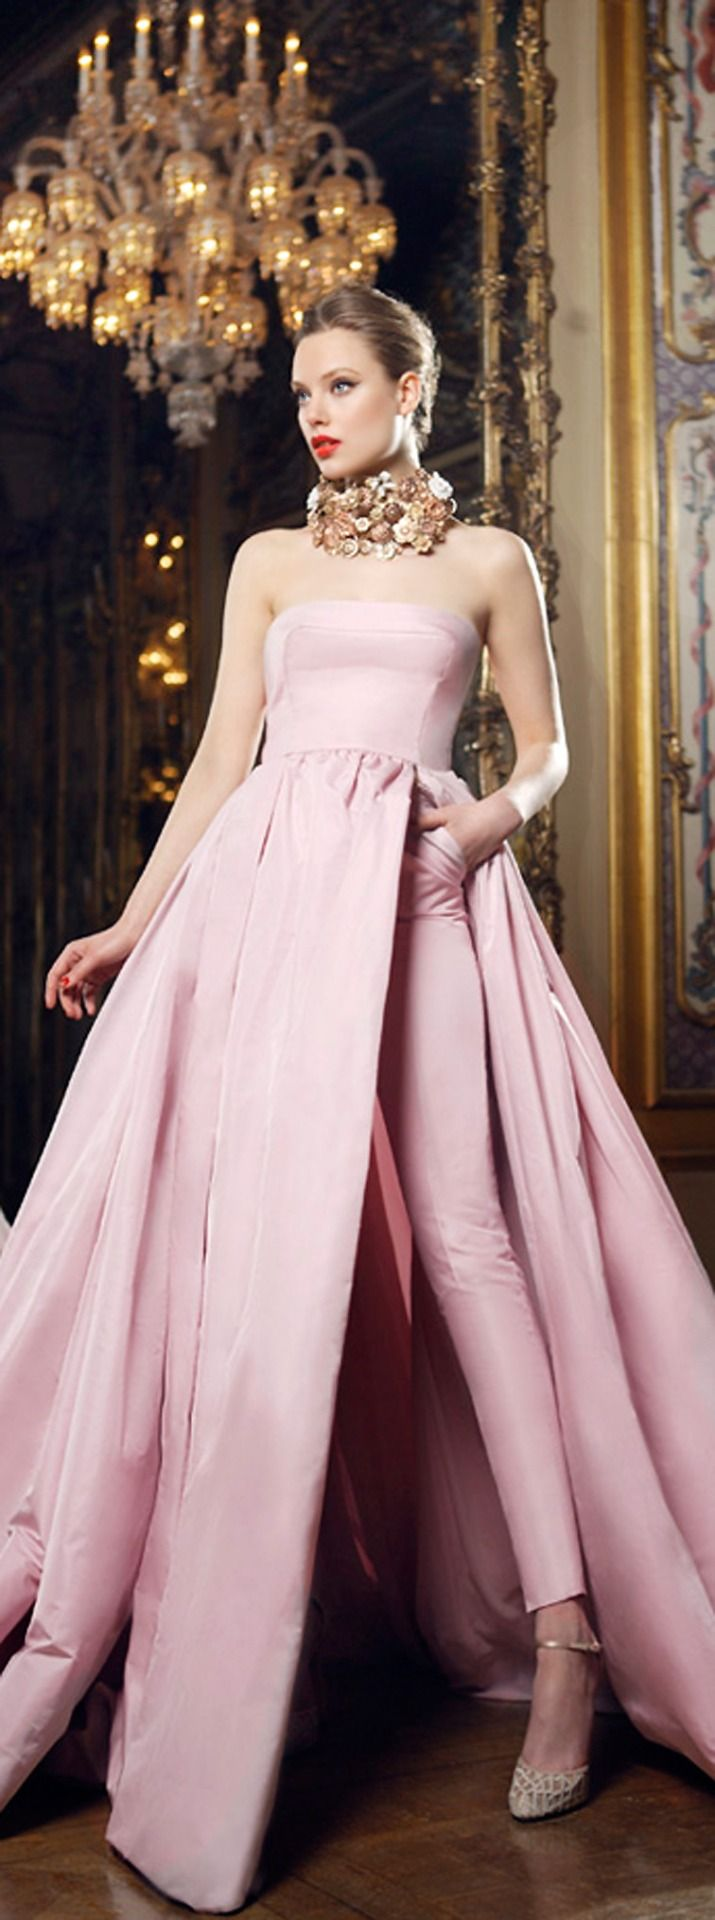 This stunning pink outfit would make a perfect fun fashion and could work for a variety of age divisions and systems depending on how it's accessorized.